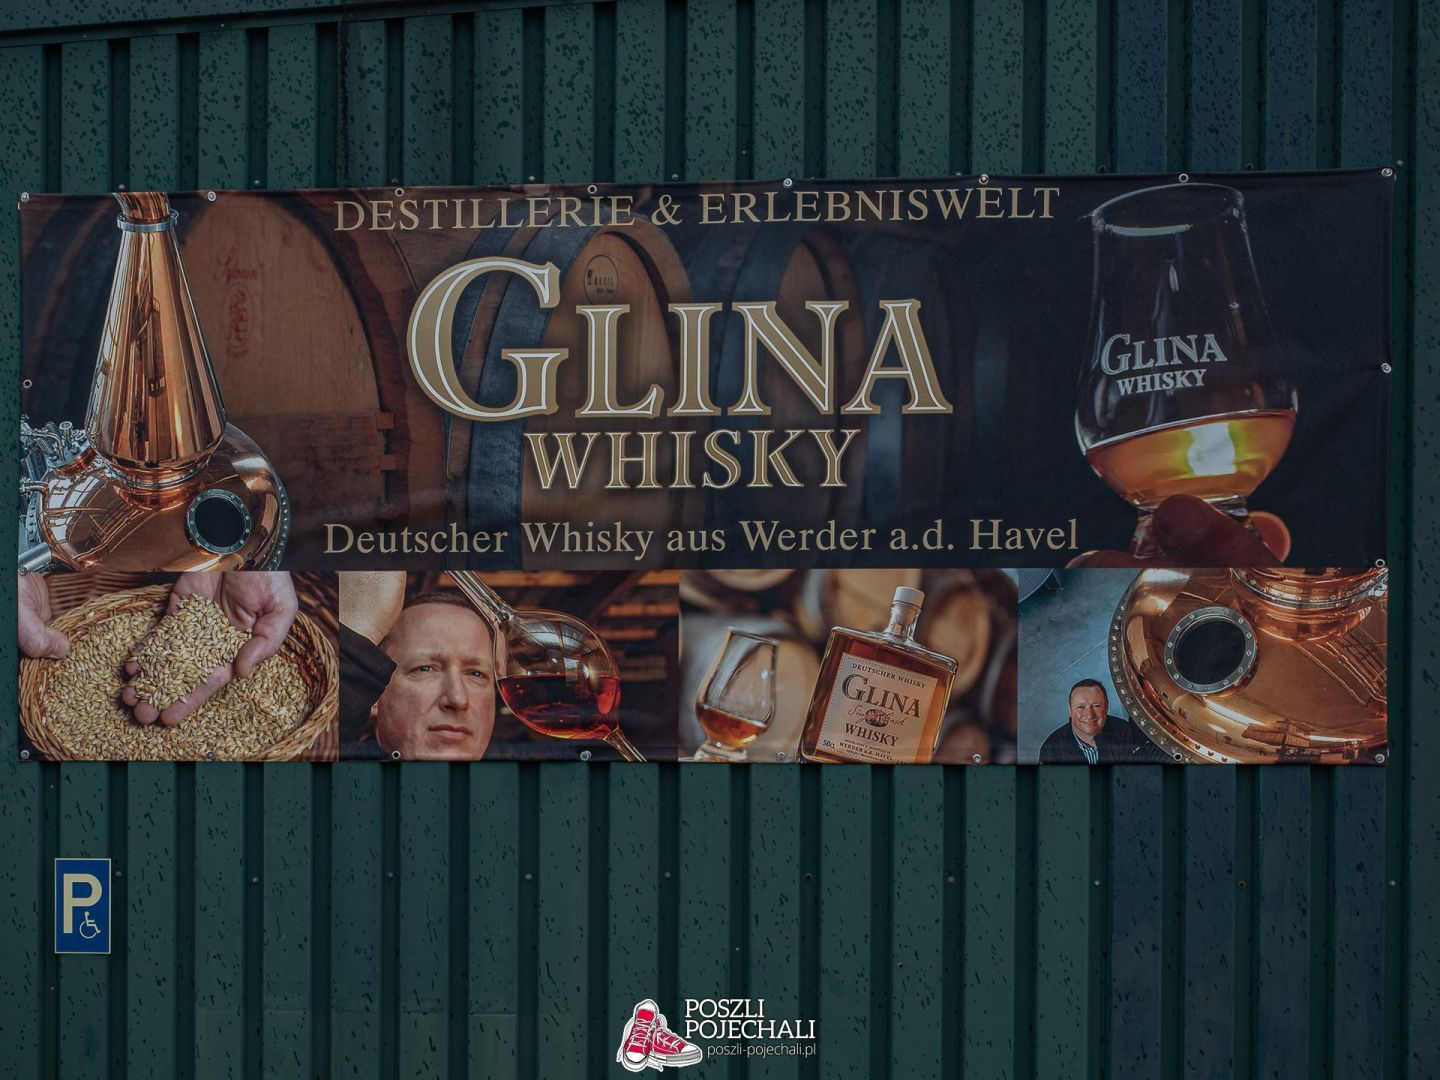 Glina Whisky, Werder a.d. Havel, Brandenburg